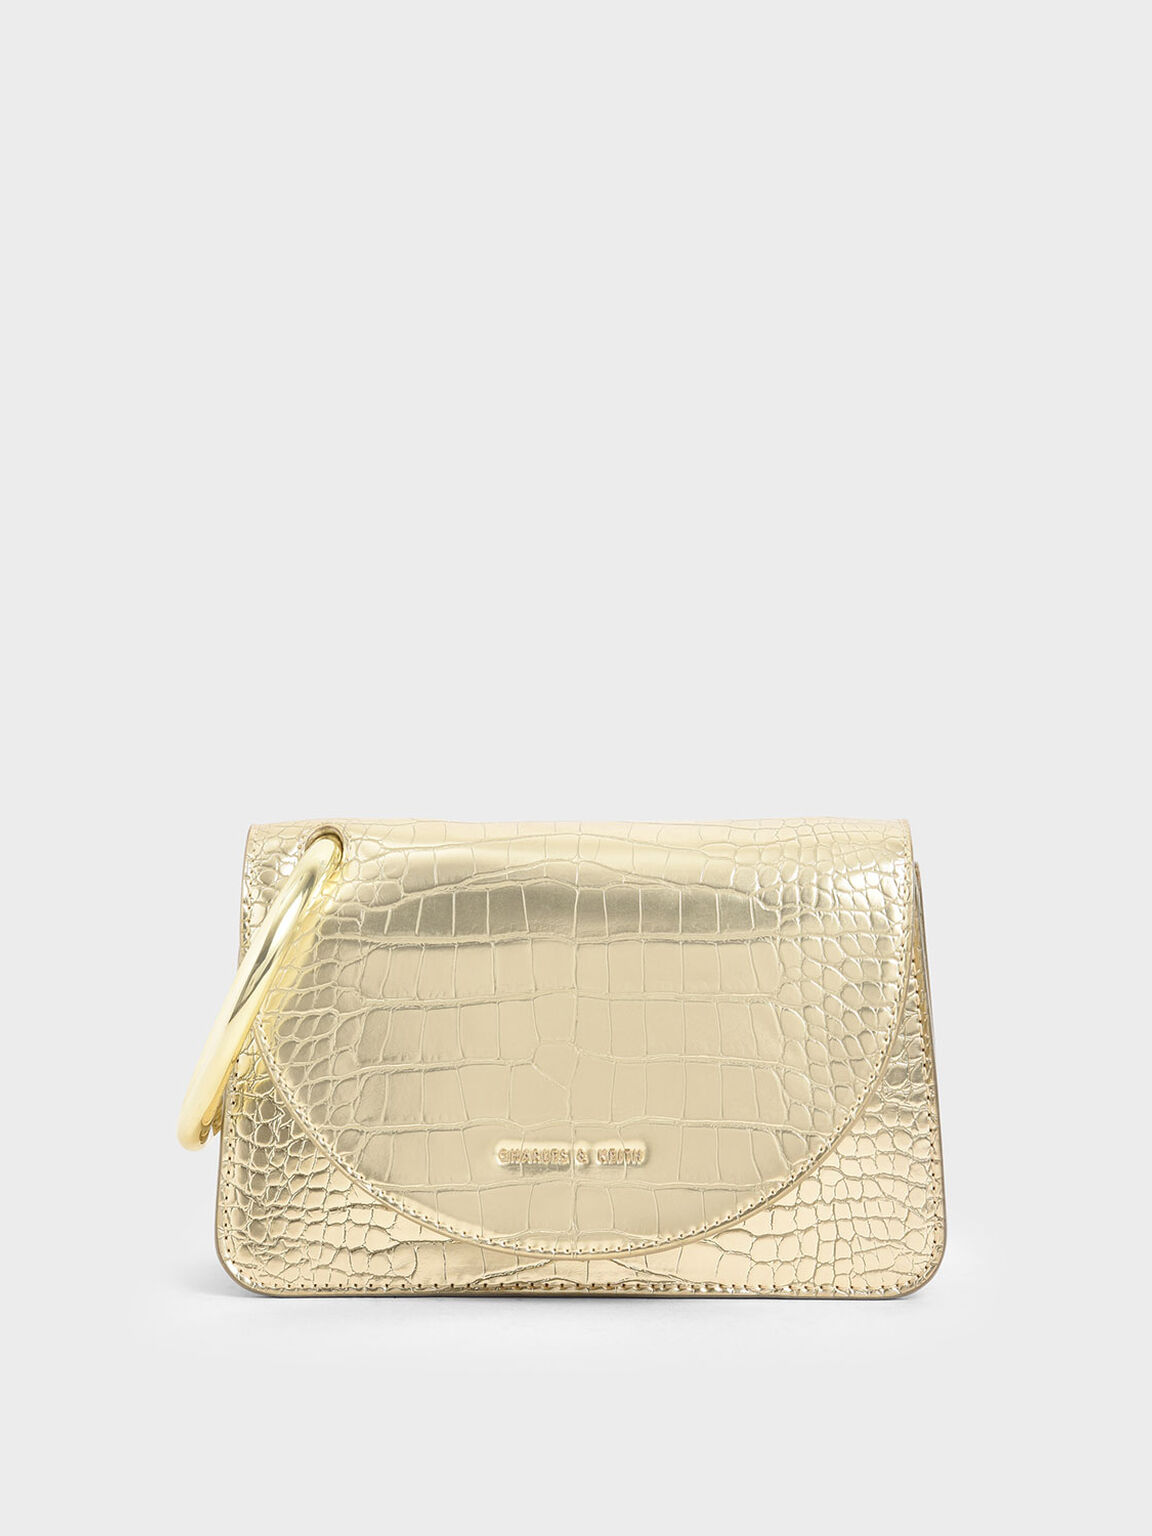 Croc-Effect Acrylic Handle Wristlet Clutch, Gold, hi-res